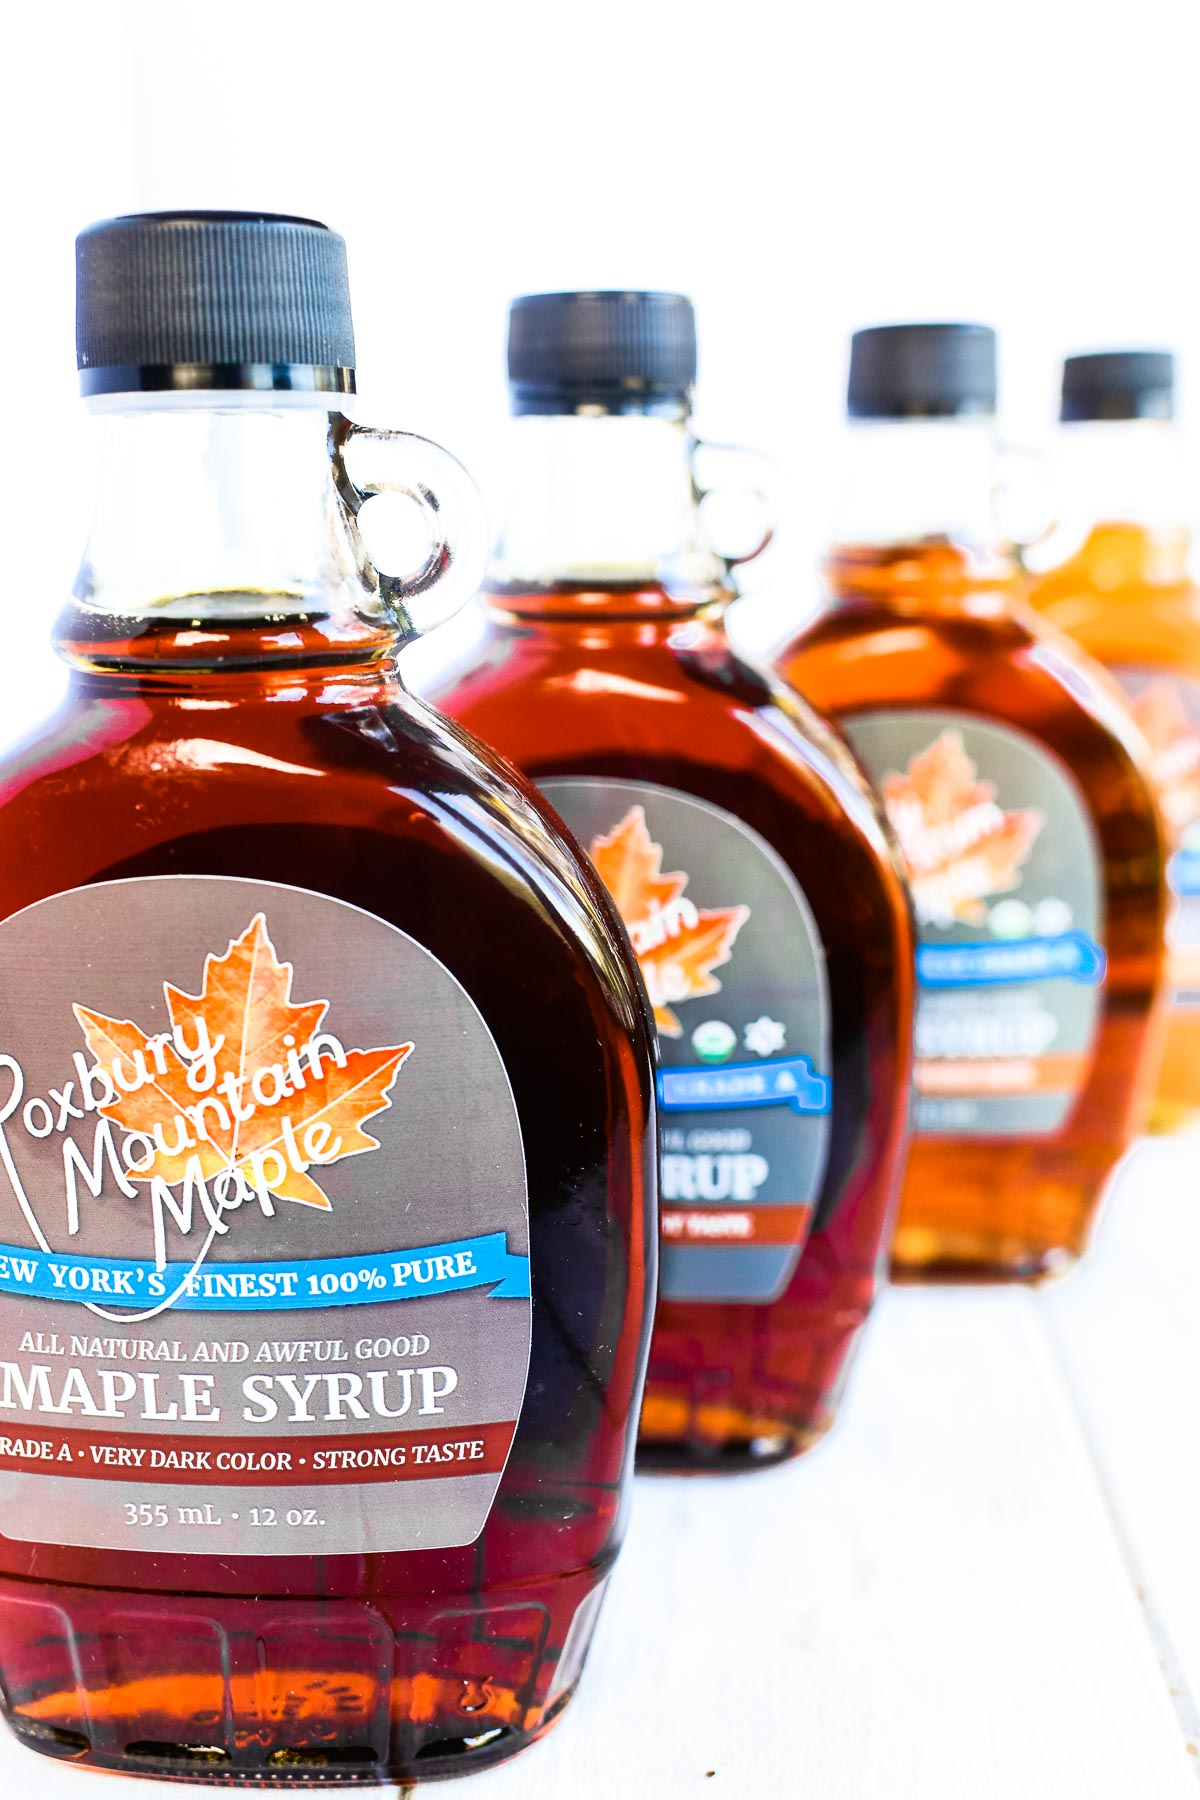 Roxbury Mountain Maple Syrups